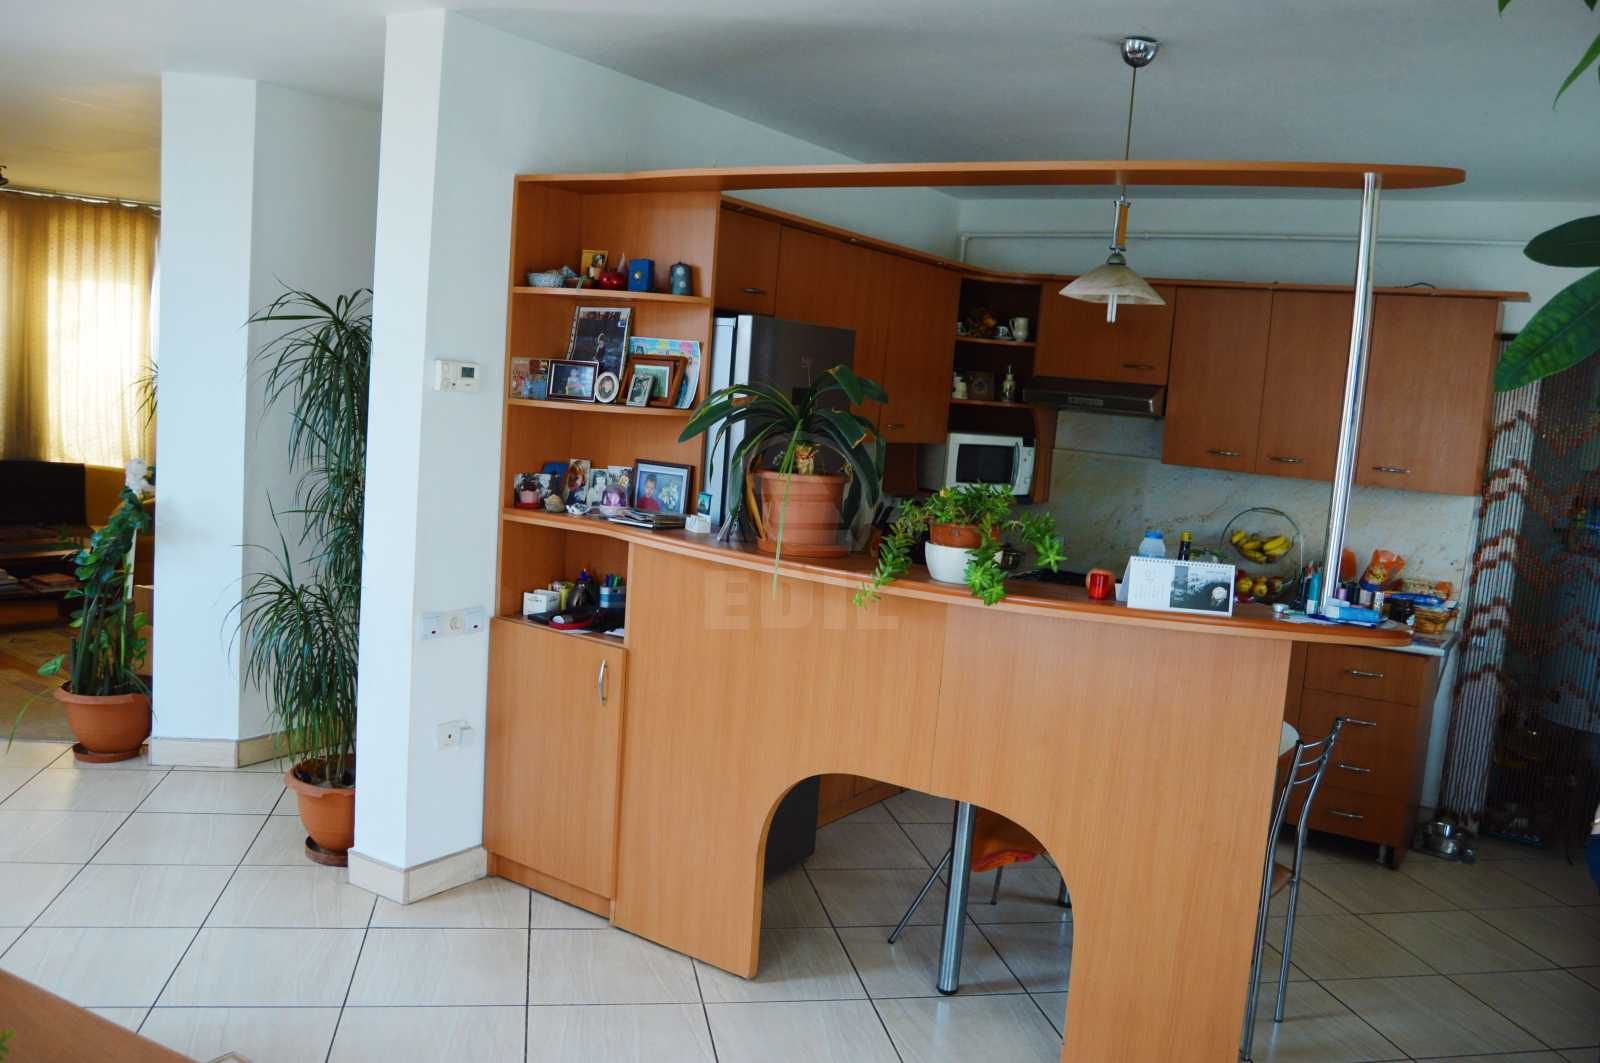 House for sale 5 rooms, CACJ285647-4